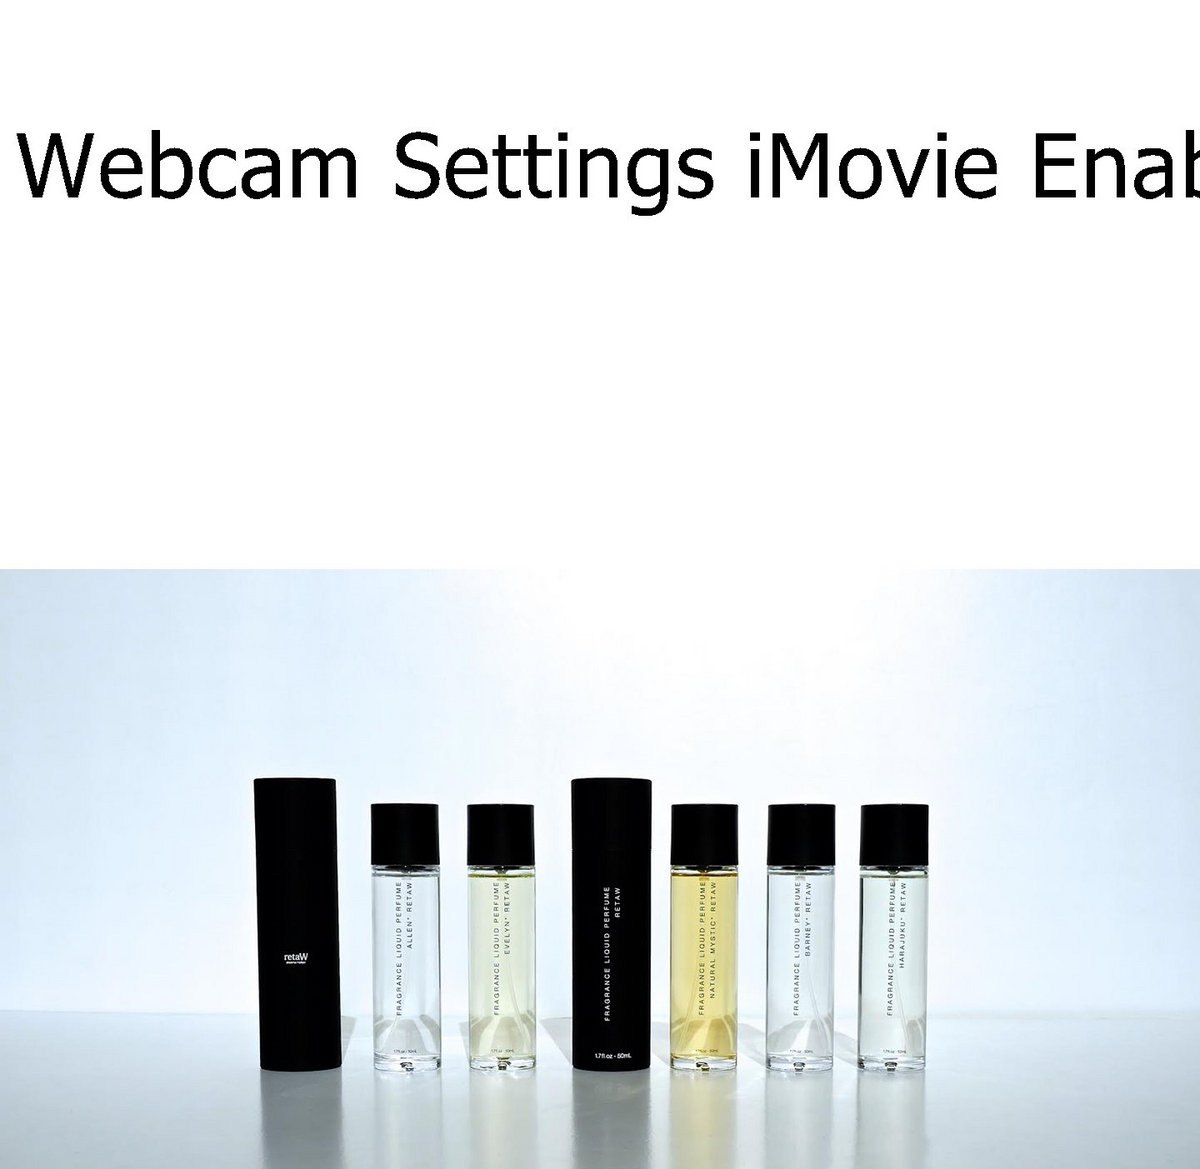 where download 1 0 webcam settings imovie enabler for Mac